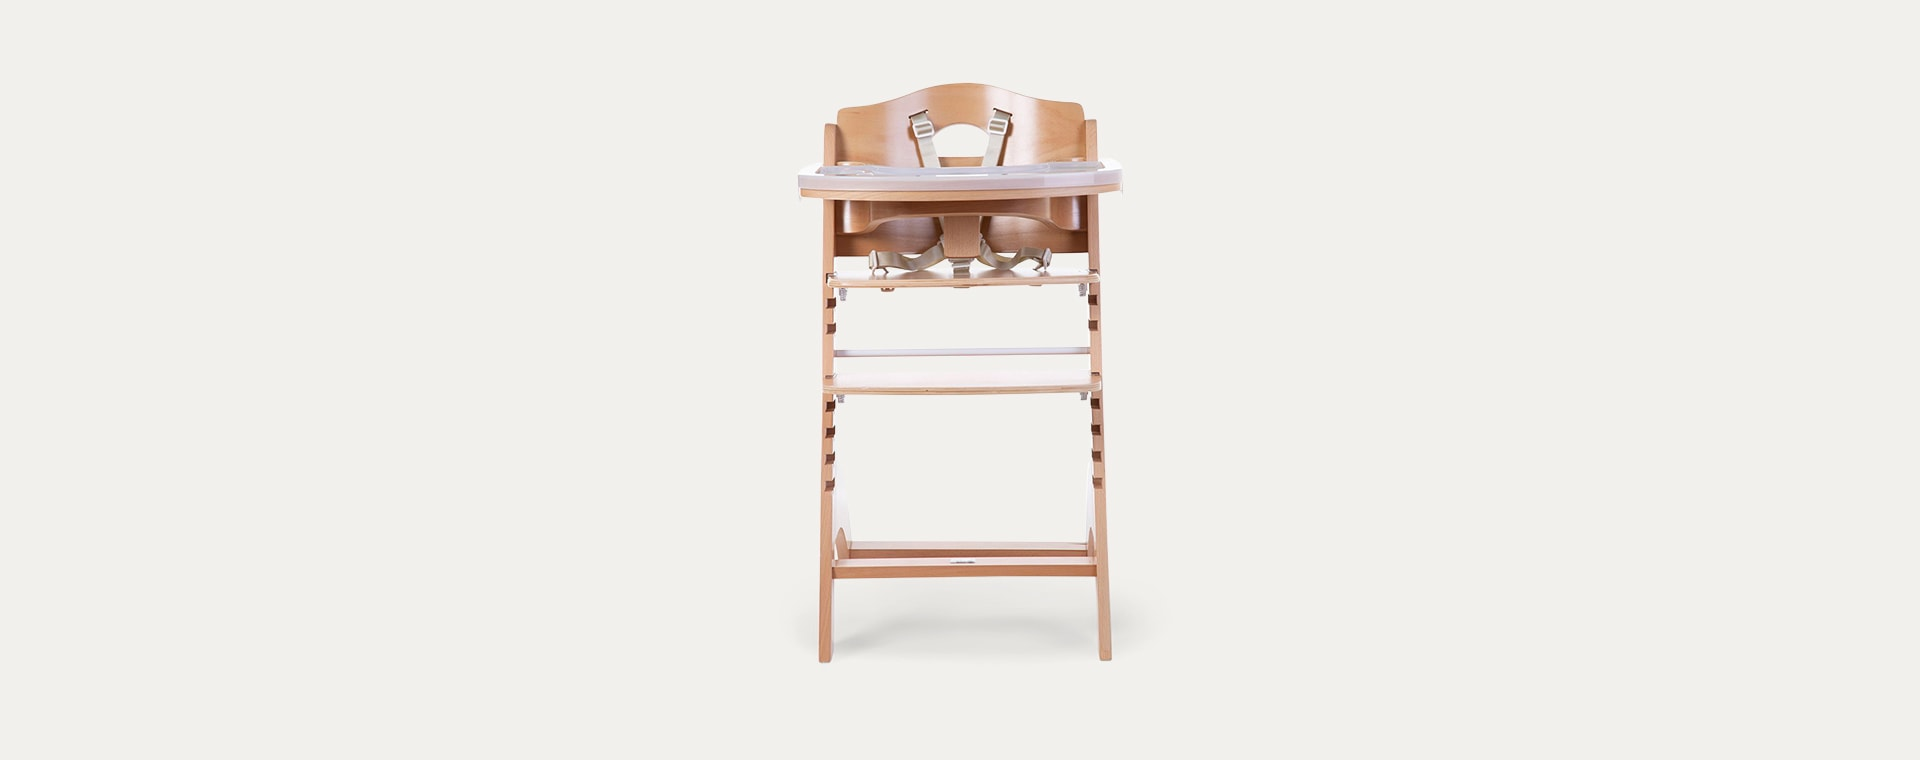 Wooden Childhome Baby Grow Chair Lambda 3